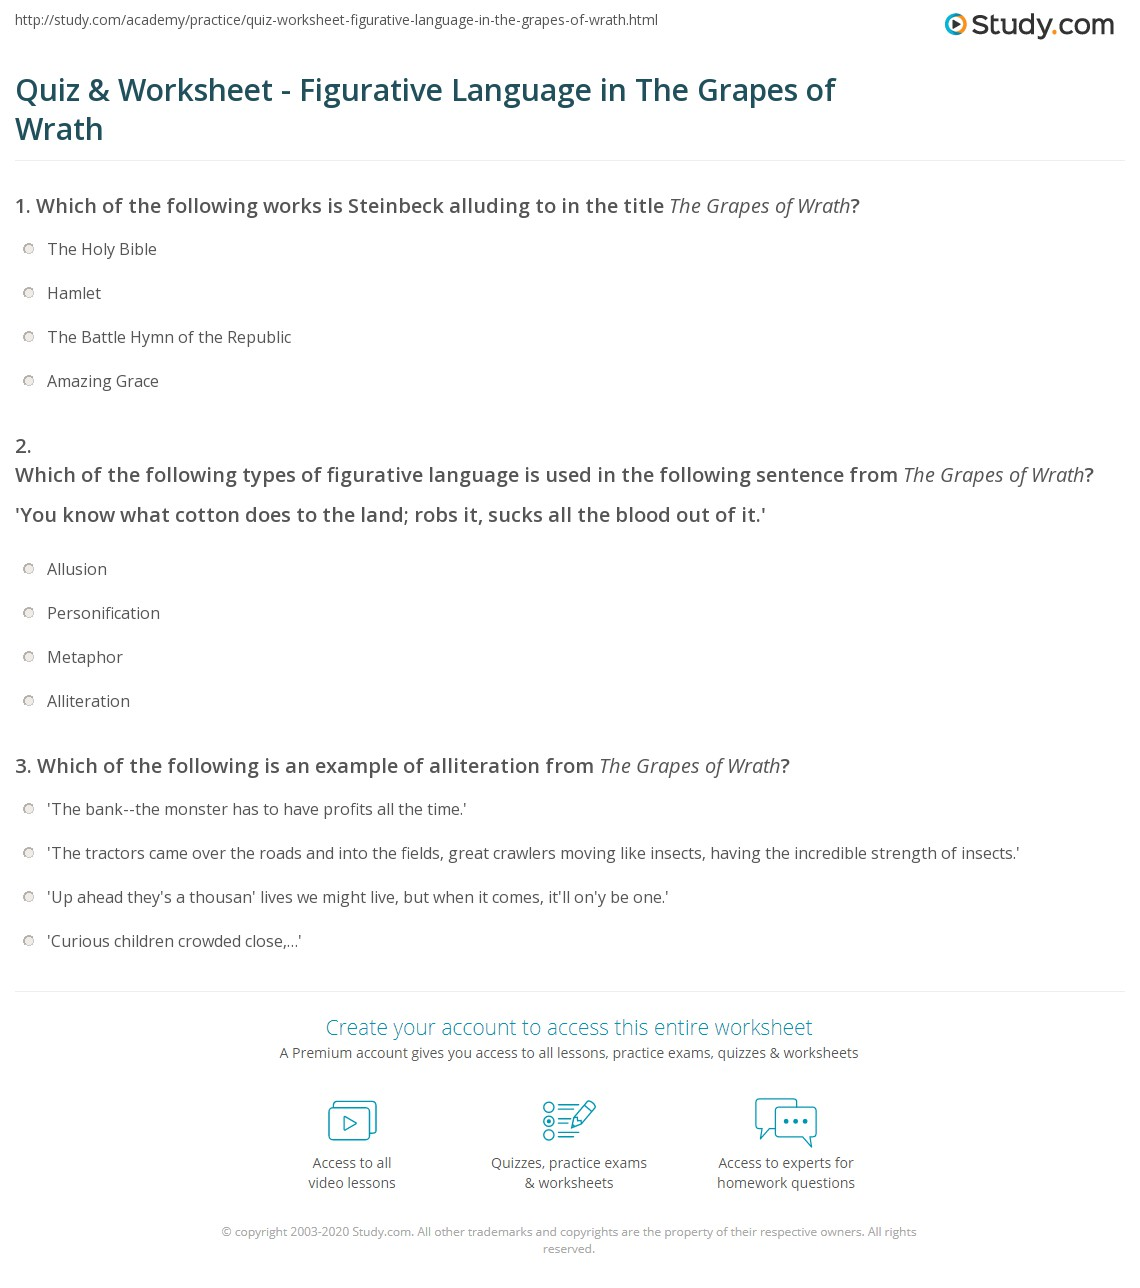 Quiz Worksheet Figurative Language In The Grapes Of Wrath